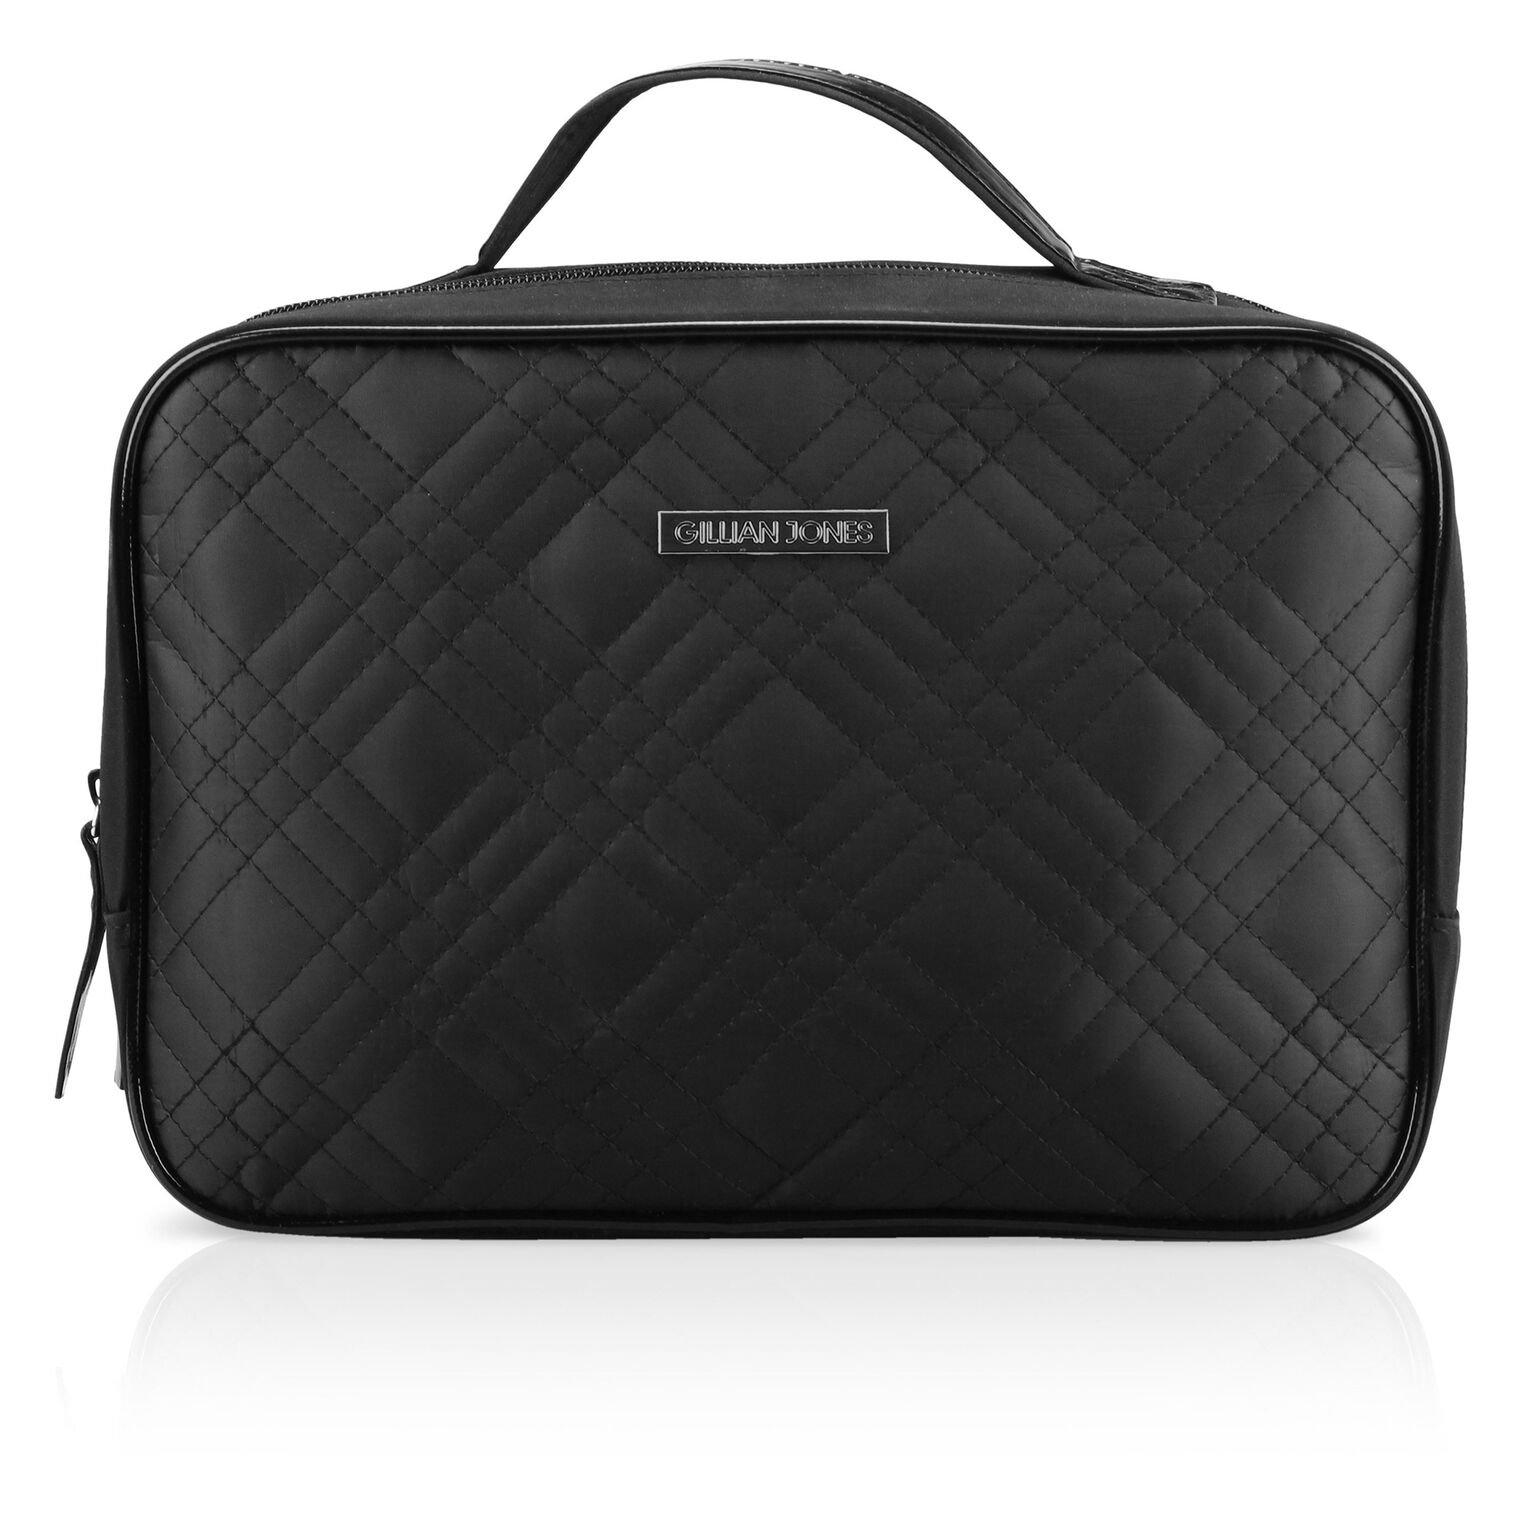 Gillian Jones - Cosmetic Bag with two compartments and black quilted nylon